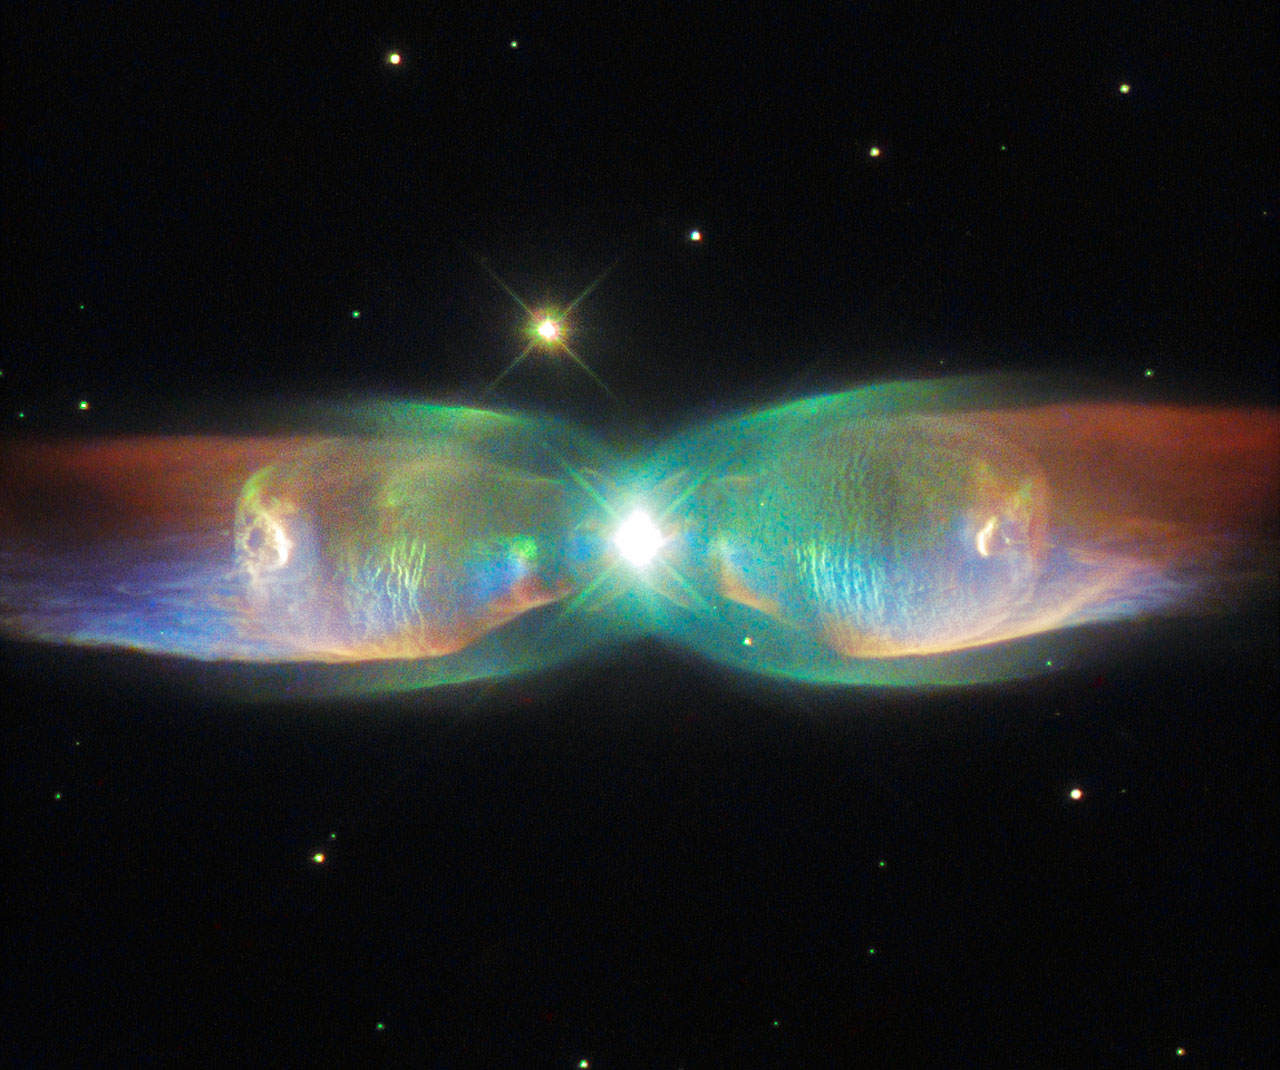 The Twin Jet Nebula, or PN M2-9, is a striking example of a bipolar planetary nebula. Bipolar planetary nebulae are formed when the central object is not a single star, but a binary system, Studies have shown that the nebula's size increases with time, and measurements of this rate of increase suggest that the stellar outburst that formed the lobes occurred just 1200 years ago.